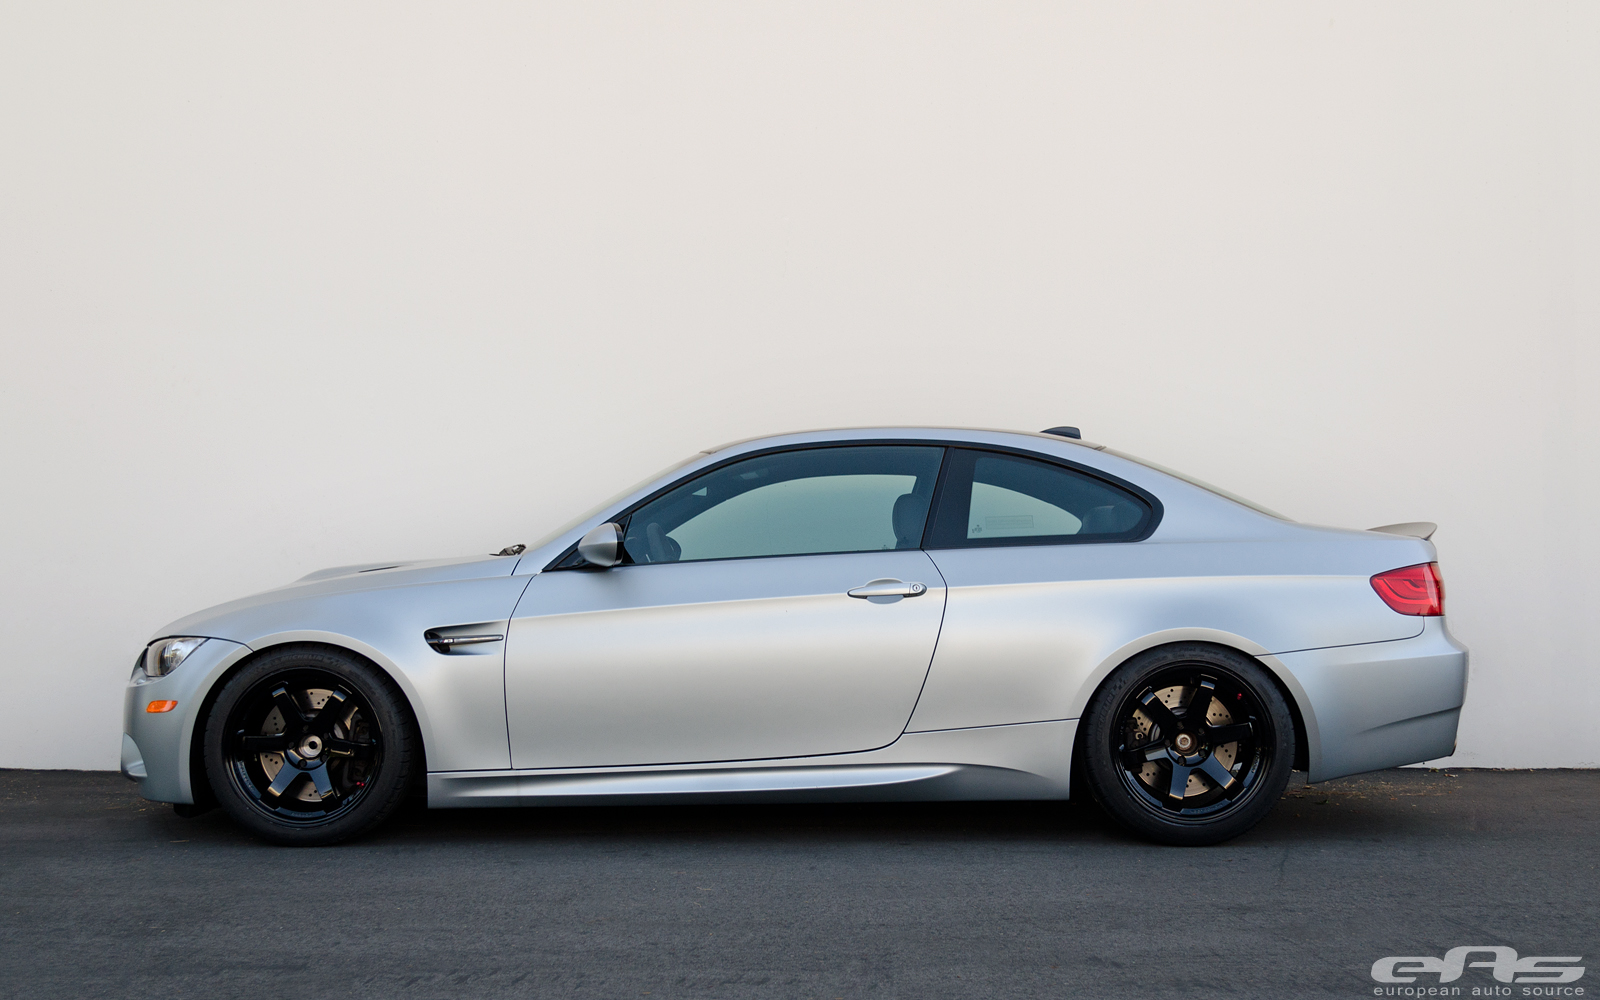 Frozen Silver Bmw E92 M3 From Eas Is Clean And Elegant